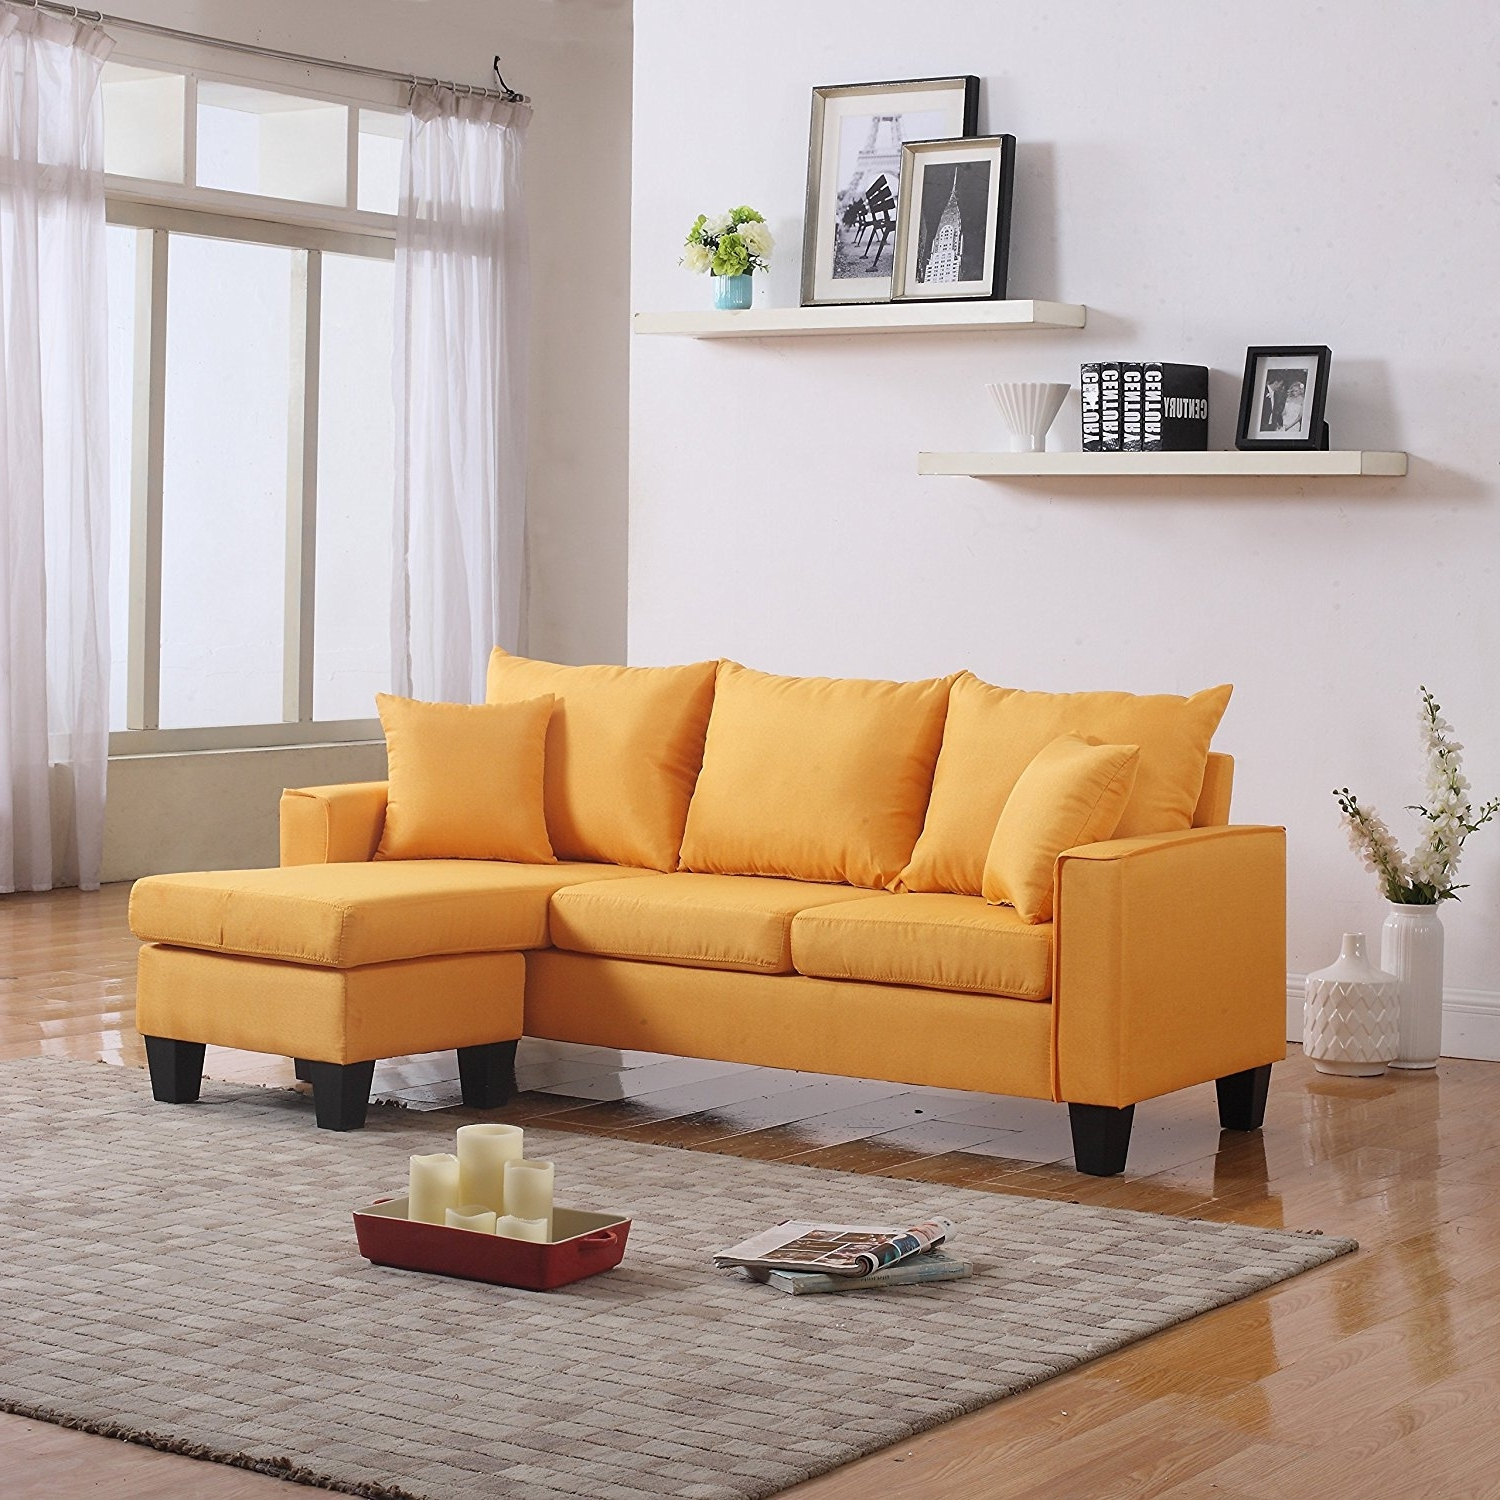 Modern Sectional Sofas For Small Spaces Pertaining To Favorite Amazon: Modern Linen Fabric Small Space Sectional Sofa With (View 14 of 15)